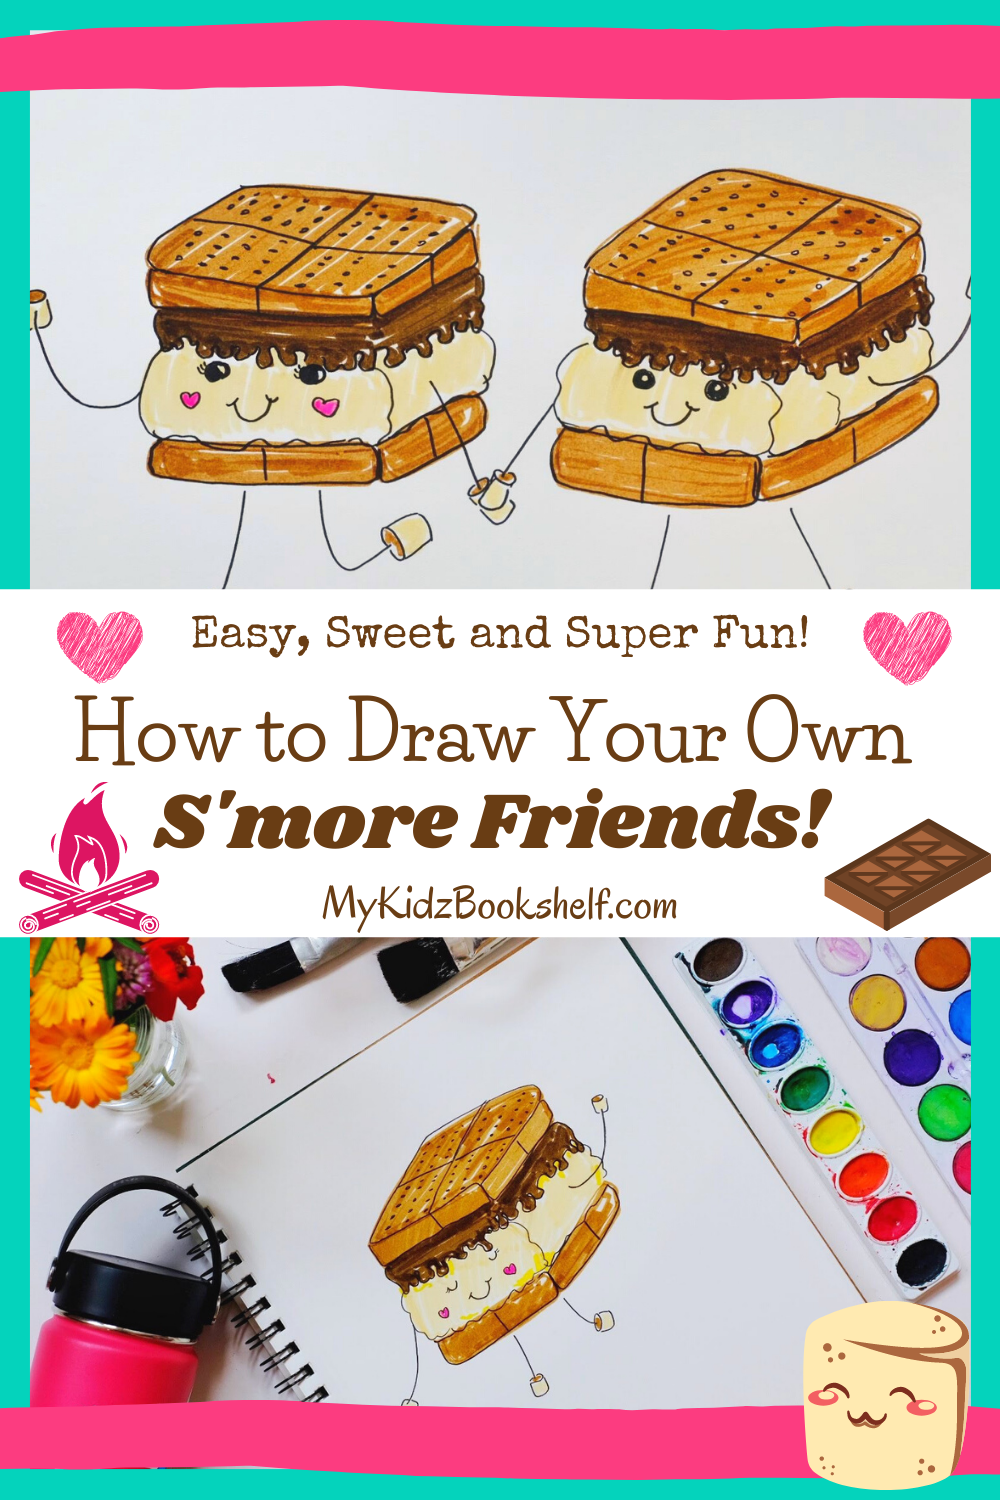 How to Draw Your Own S'more Friends blog post with graphic illustration s'mores holding hands